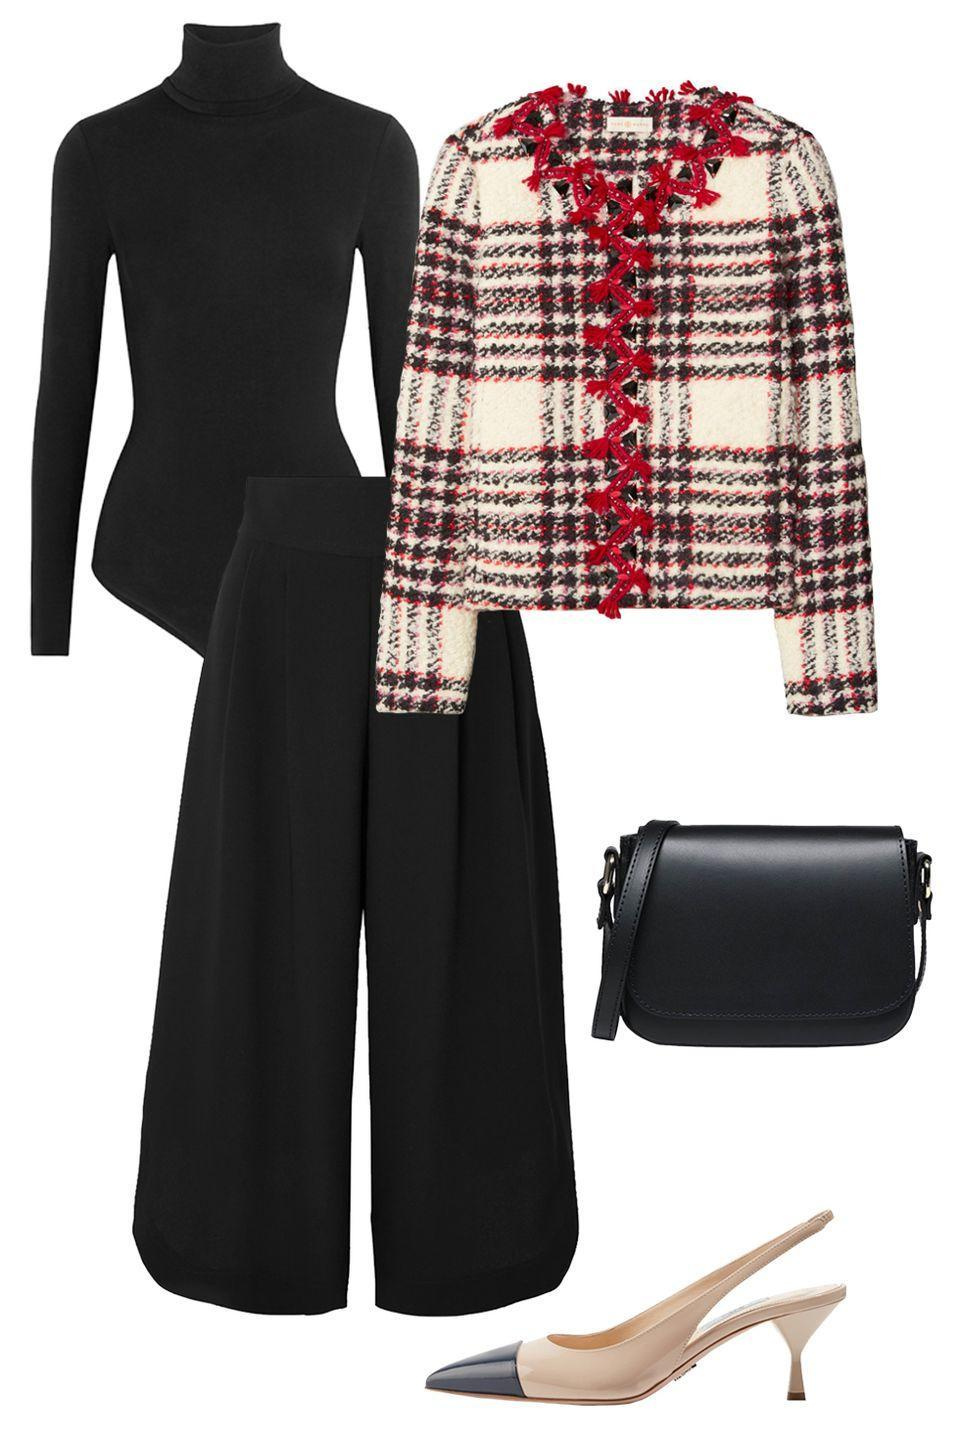 """<p>This black bodysuit alleviates the need for tucking in yet another layer. Close the deal with a streamlined black pant and lady-like jacket</p><p>Shop the pieces: <a href=""""https://www.net-a-porter.com/us/en/product/618045/Wolford/colorado-thong-bodysuit"""" rel=""""nofollow noopener"""" target=""""_blank"""" data-ylk=""""slk:Wolford Colorado Bodysuit"""" class=""""link rapid-noclick-resp""""><em>Wolford Colorado Bodysuit</em></a>, $250; <em><a href=""""https://www.net-a-porter.com/en-us/shop/product/tory-burch/kendra-chiffon-trimmed-linen-blend-tweed-jacket/1233653"""" rel=""""nofollow noopener"""" target=""""_blank"""" data-ylk=""""slk:Tory Burch Jacket"""" class=""""link rapid-noclick-resp"""">Tory Burch Jacket</a></em>, $300; <em><a href=""""https://www.net-a-porter.com/en-us/shop/product/nili-lotan/ilford-wool-blend-twill-culottes/1273705"""" rel=""""nofollow noopener"""" target=""""_blank"""" data-ylk=""""slk:Nili Lotan Culottes"""" class=""""link rapid-noclick-resp"""">Nili Lotan Culottes</a></em>, $330; <em><a href=""""https://www.net-a-porter.com/en-us/shop/product/alexandre-birman/clarita-bow-embellished-suede-slingback-pumps/1258301"""" rel=""""nofollow noopener"""" target=""""_blank"""" data-ylk=""""slk:Alexander Birman Slingback"""" class=""""link rapid-noclick-resp"""">Alexander Birman Slingback</a></em>, $750; <a href=""""https://www.cuyana.com/bags/crossbody-bags/box-crossbody/10010234-001-000.html?utm_source=google&utm_medium=cpc&gclid=Cj0KCQiAj9iBBhCJARIsAE9qRtAjARehGTzg_hbIcFEH3JB797qspwBzXRfC3yXSuroY68q9c6iFD9MaAnDxEALw_wcB"""" rel=""""nofollow noopener"""" target=""""_blank"""" data-ylk=""""slk:Cuyana Bag"""" class=""""link rapid-noclick-resp""""><em>Cuyana Bag</em></a>, $245</p>"""